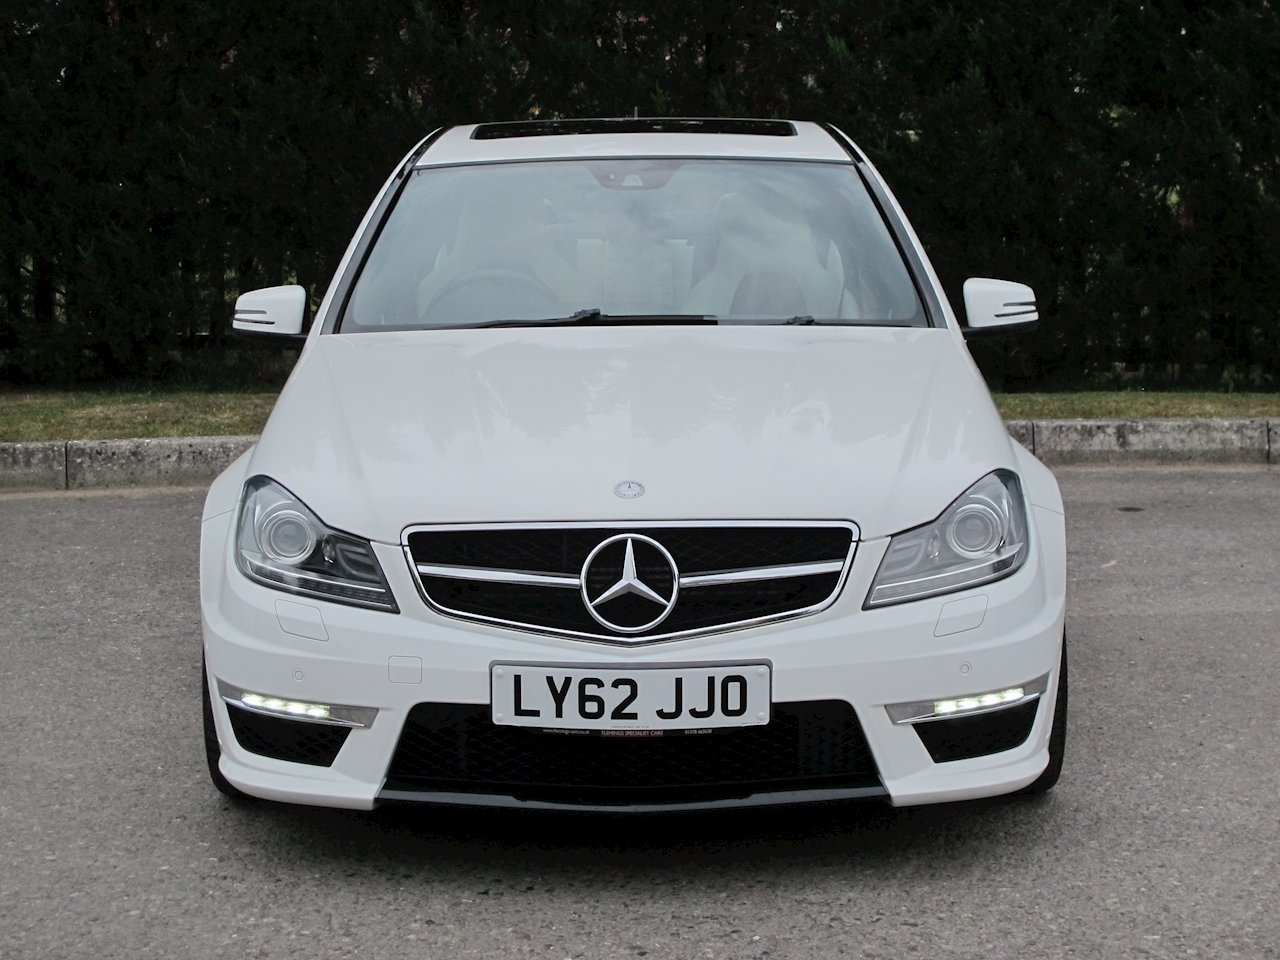 2012 Mercedes C63 AMG Saloon For Sale (picture 2 of 6)